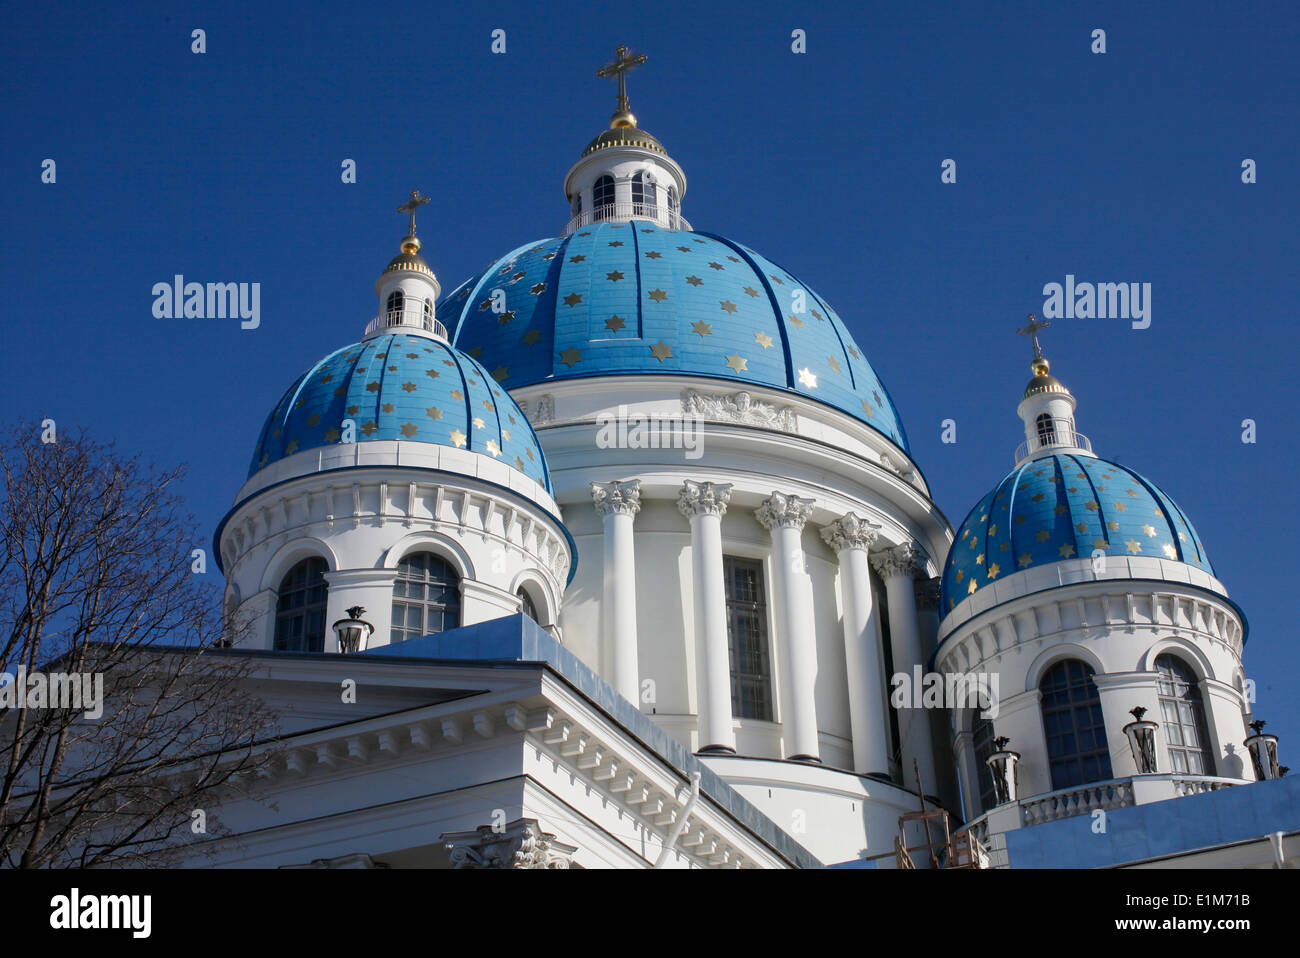 Trinity Cathedral. Blue cupolas emblazoned with golden stars. - Stock Image